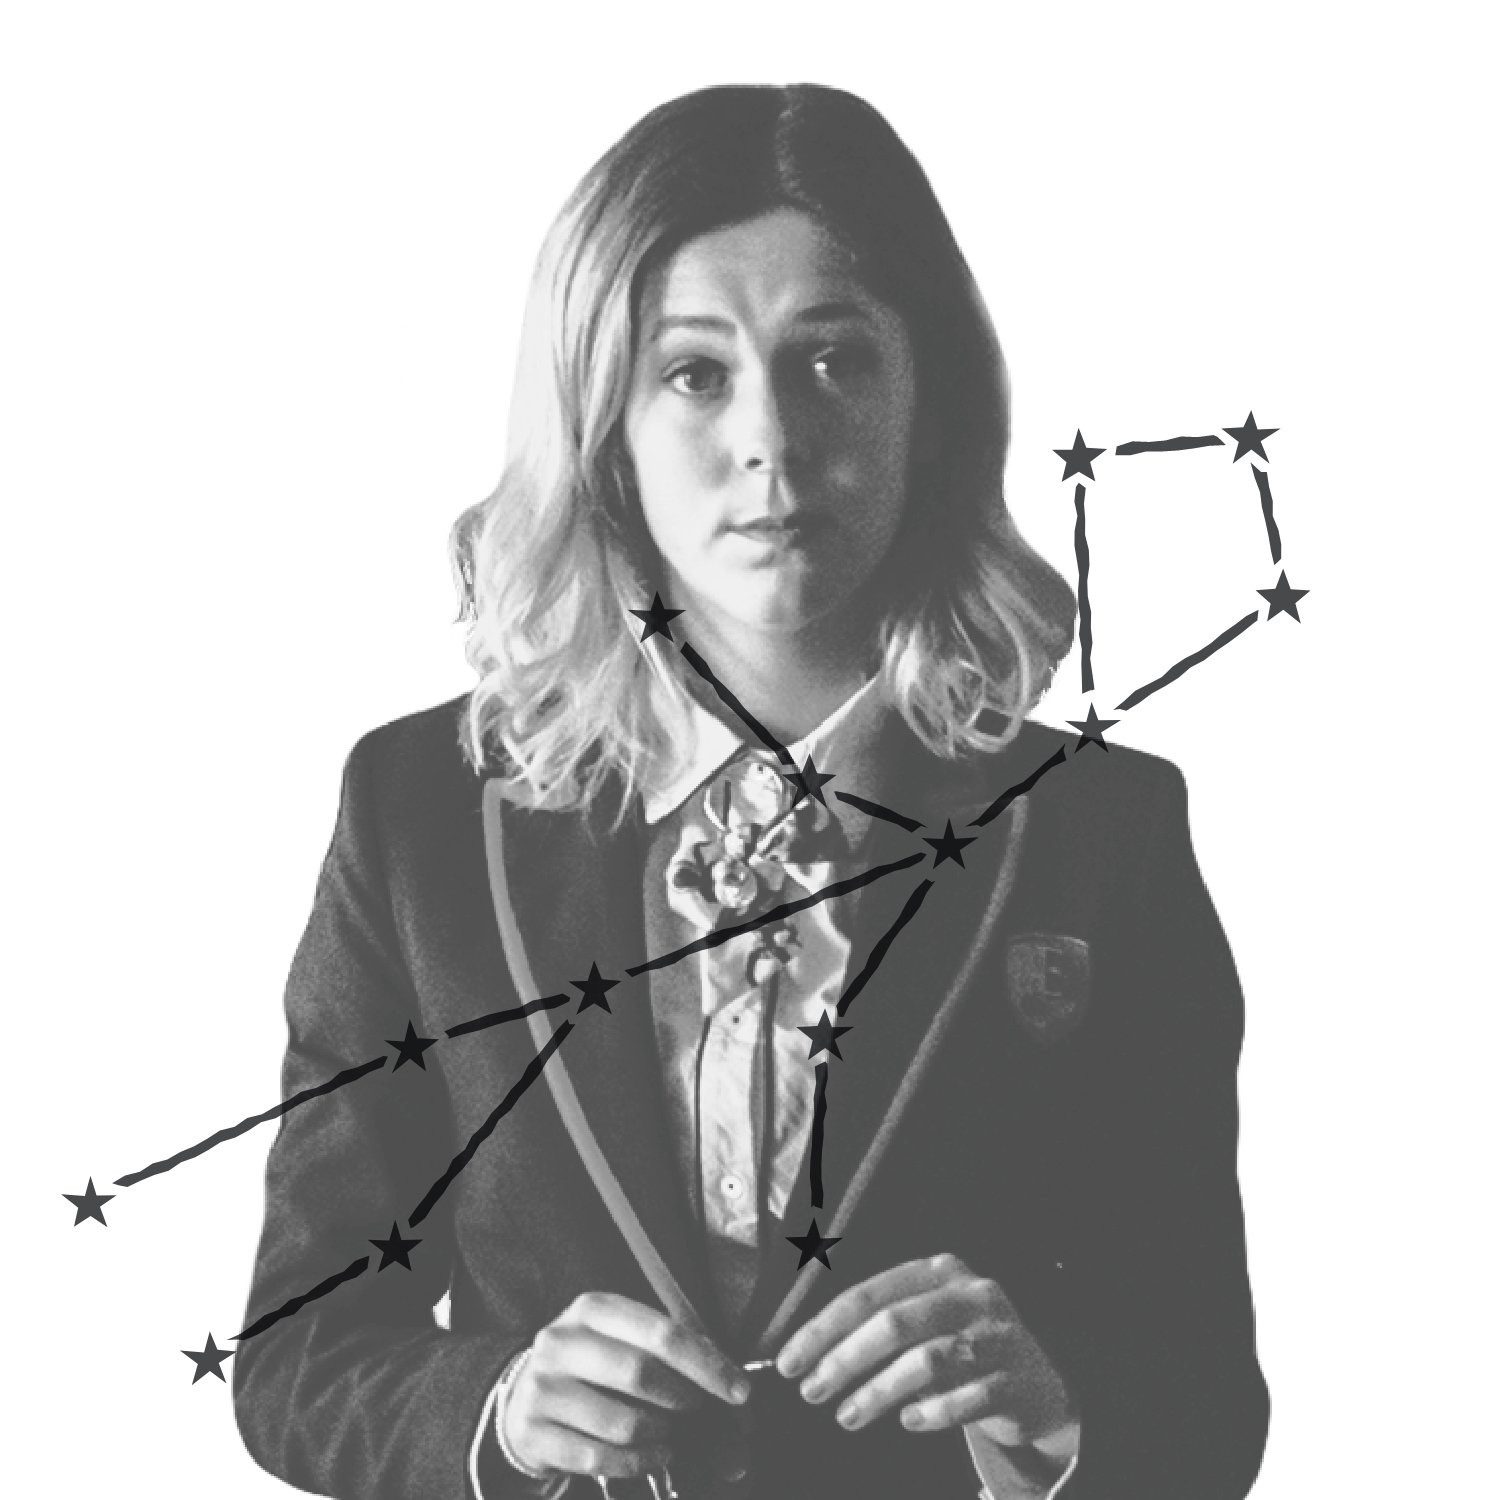 Cayetana Grajera Pando (played by Georgina Amorós) is all business in her school blazer in this still from <i>Elite</i>. She looks like she gets what she wants. Over the image is an illustration of Cayetana's zodiac constellation.